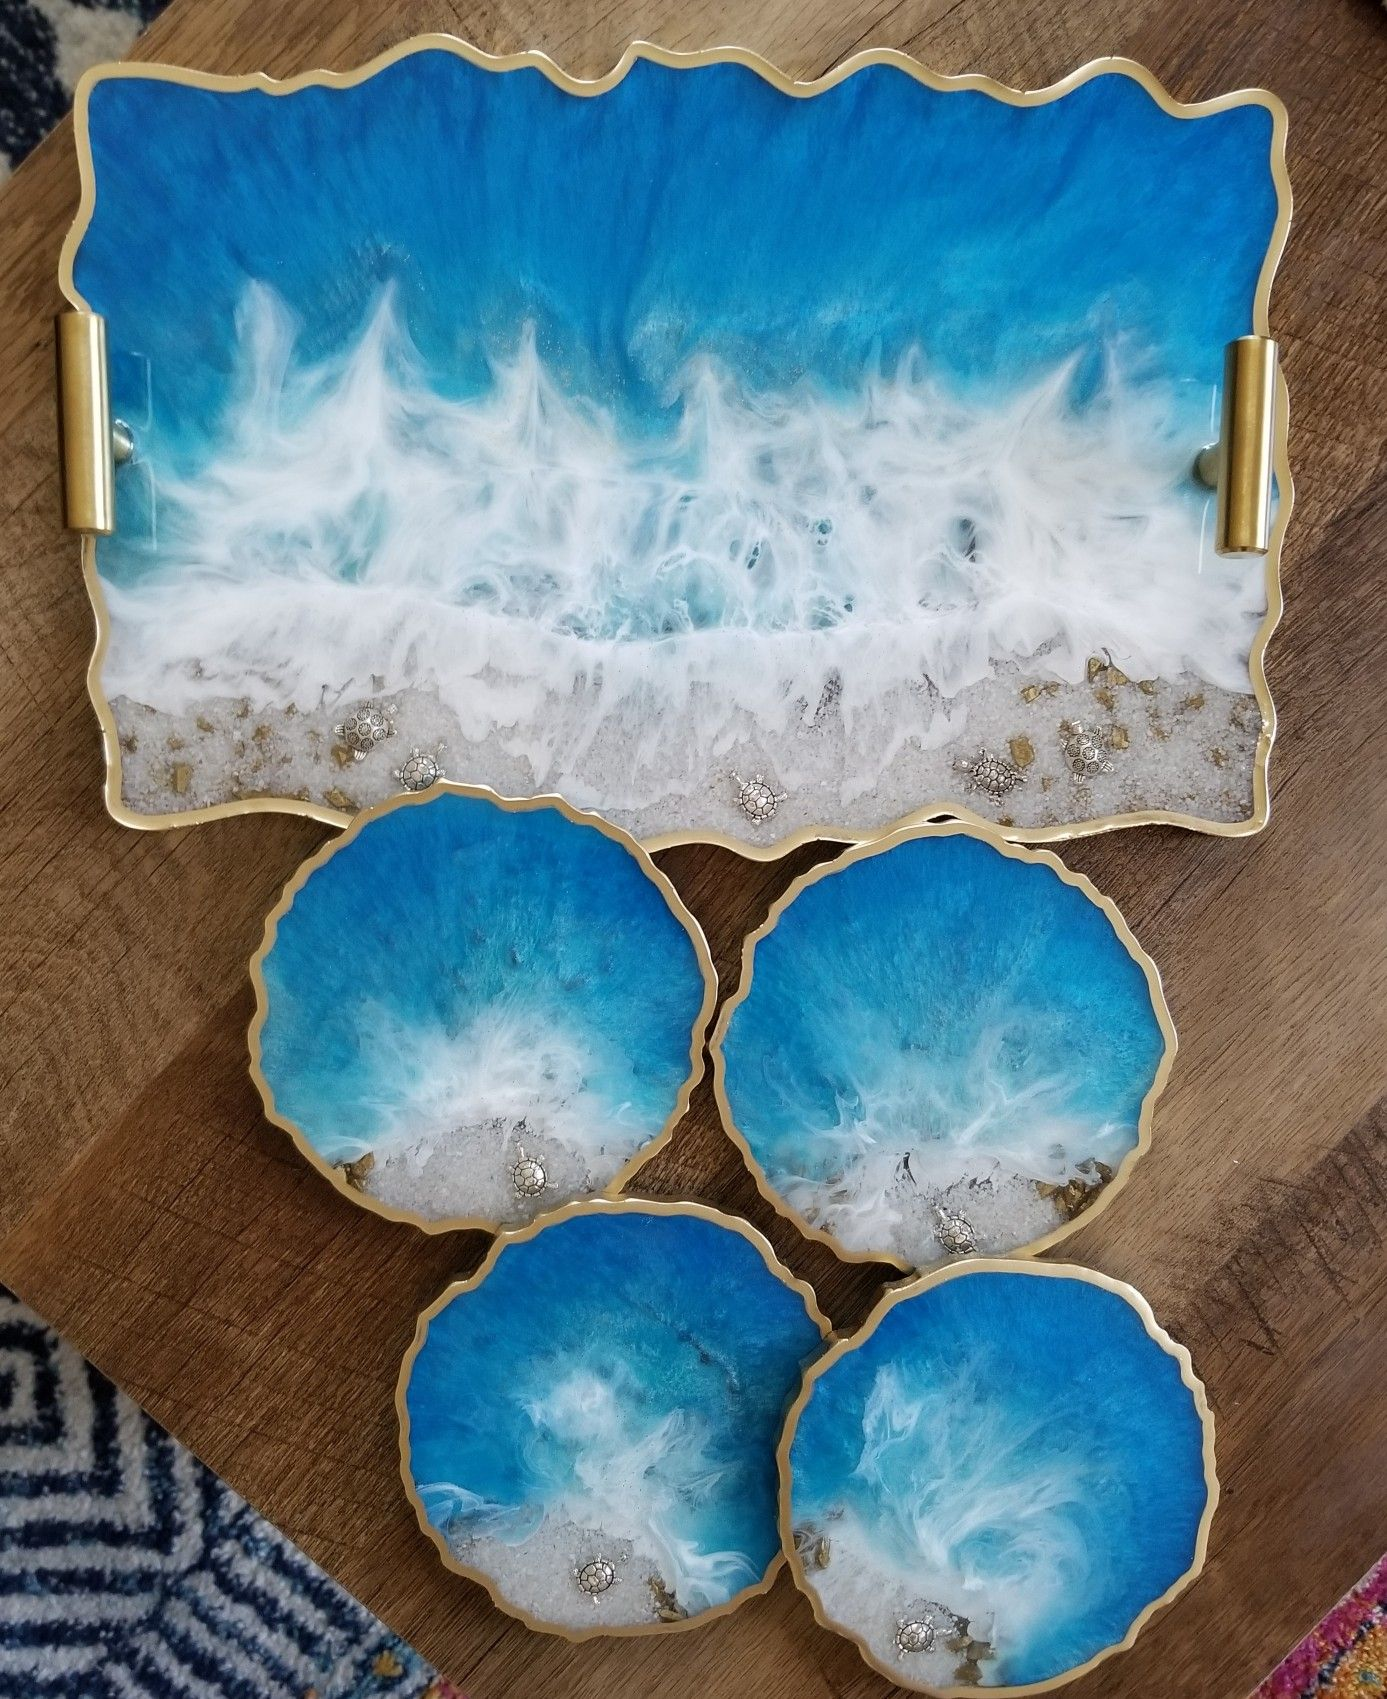 Ocean inspired resin tray with turtles